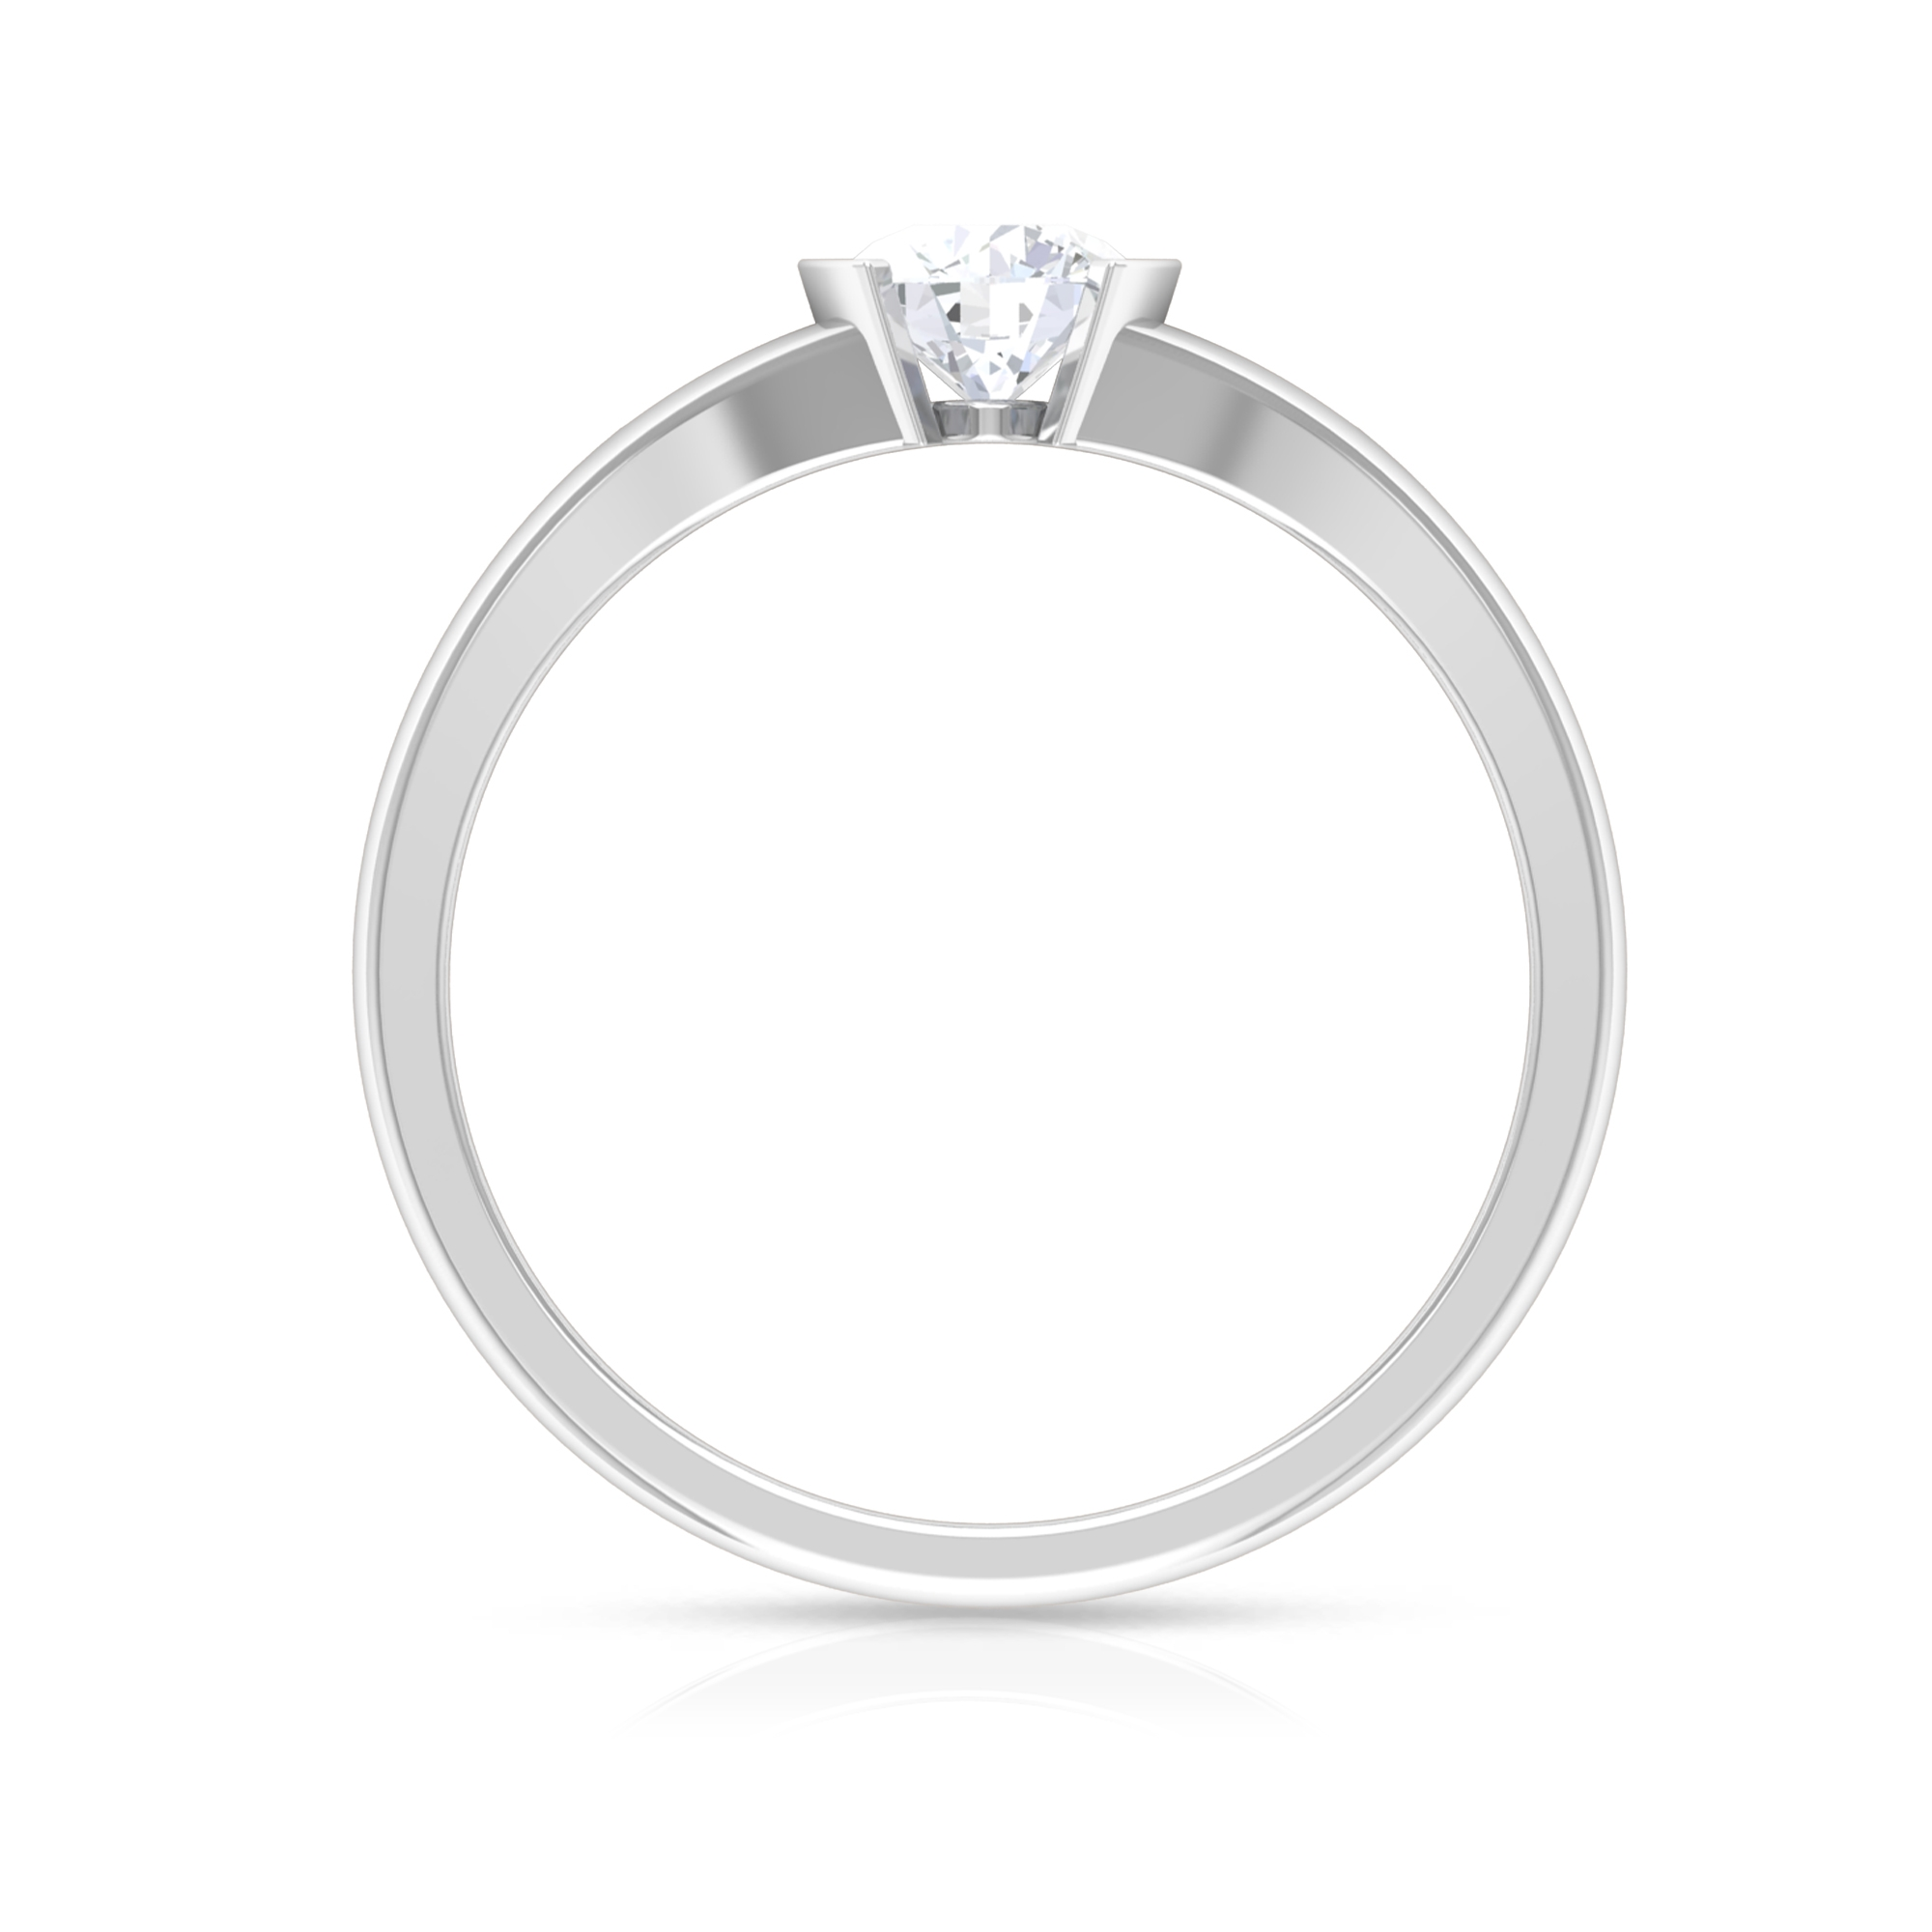 5 MM Round Cut Diamond Solitaire Ring in Half Bezel Setting with Split Shank